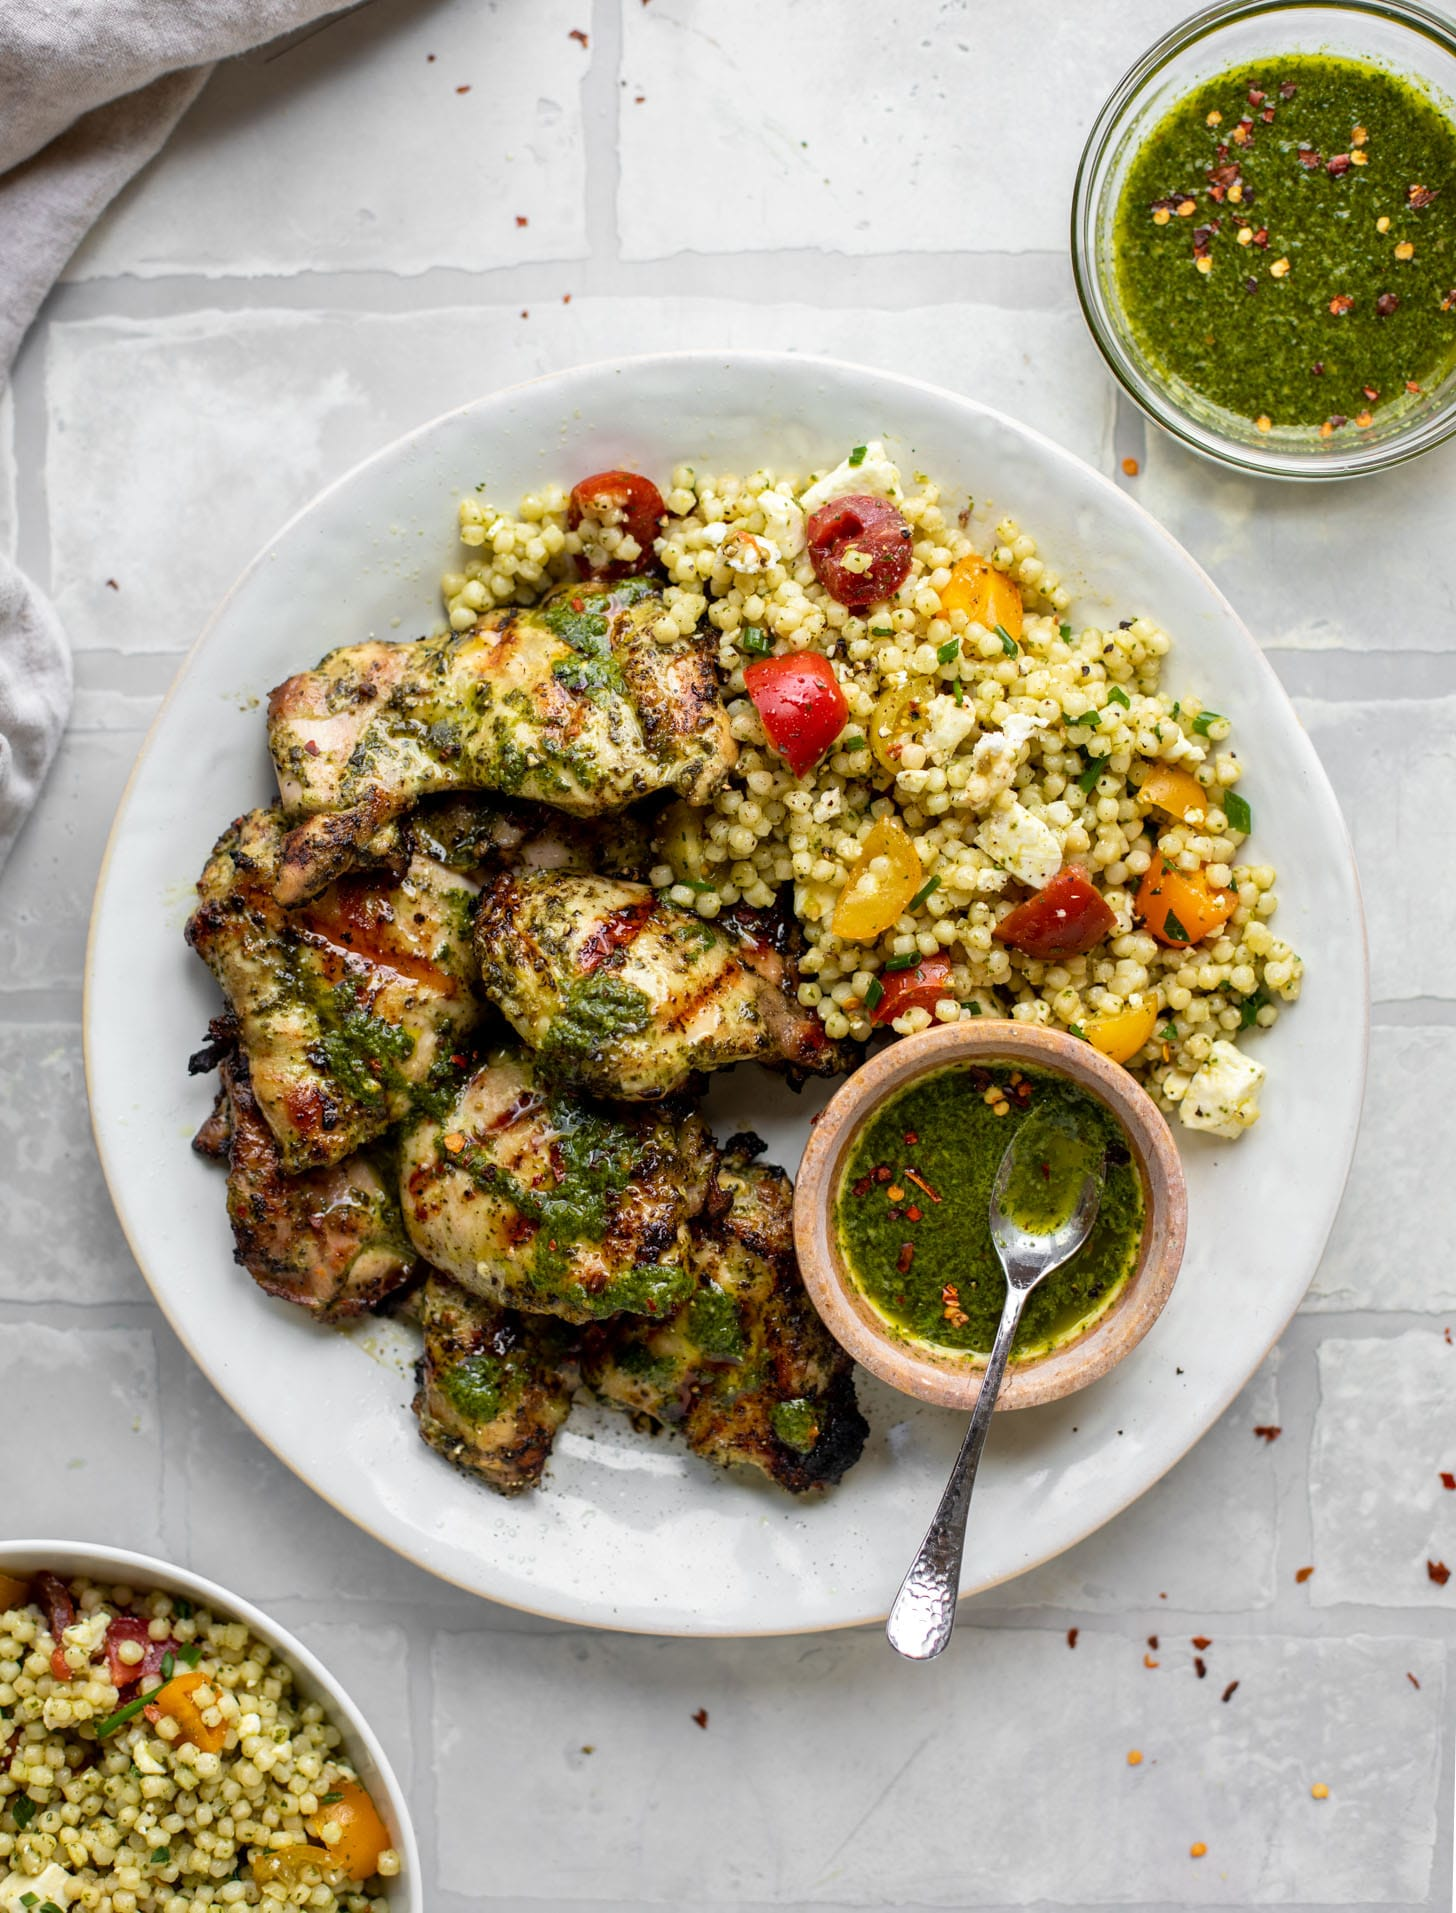 chimichurri grilled chicken with couscous salad